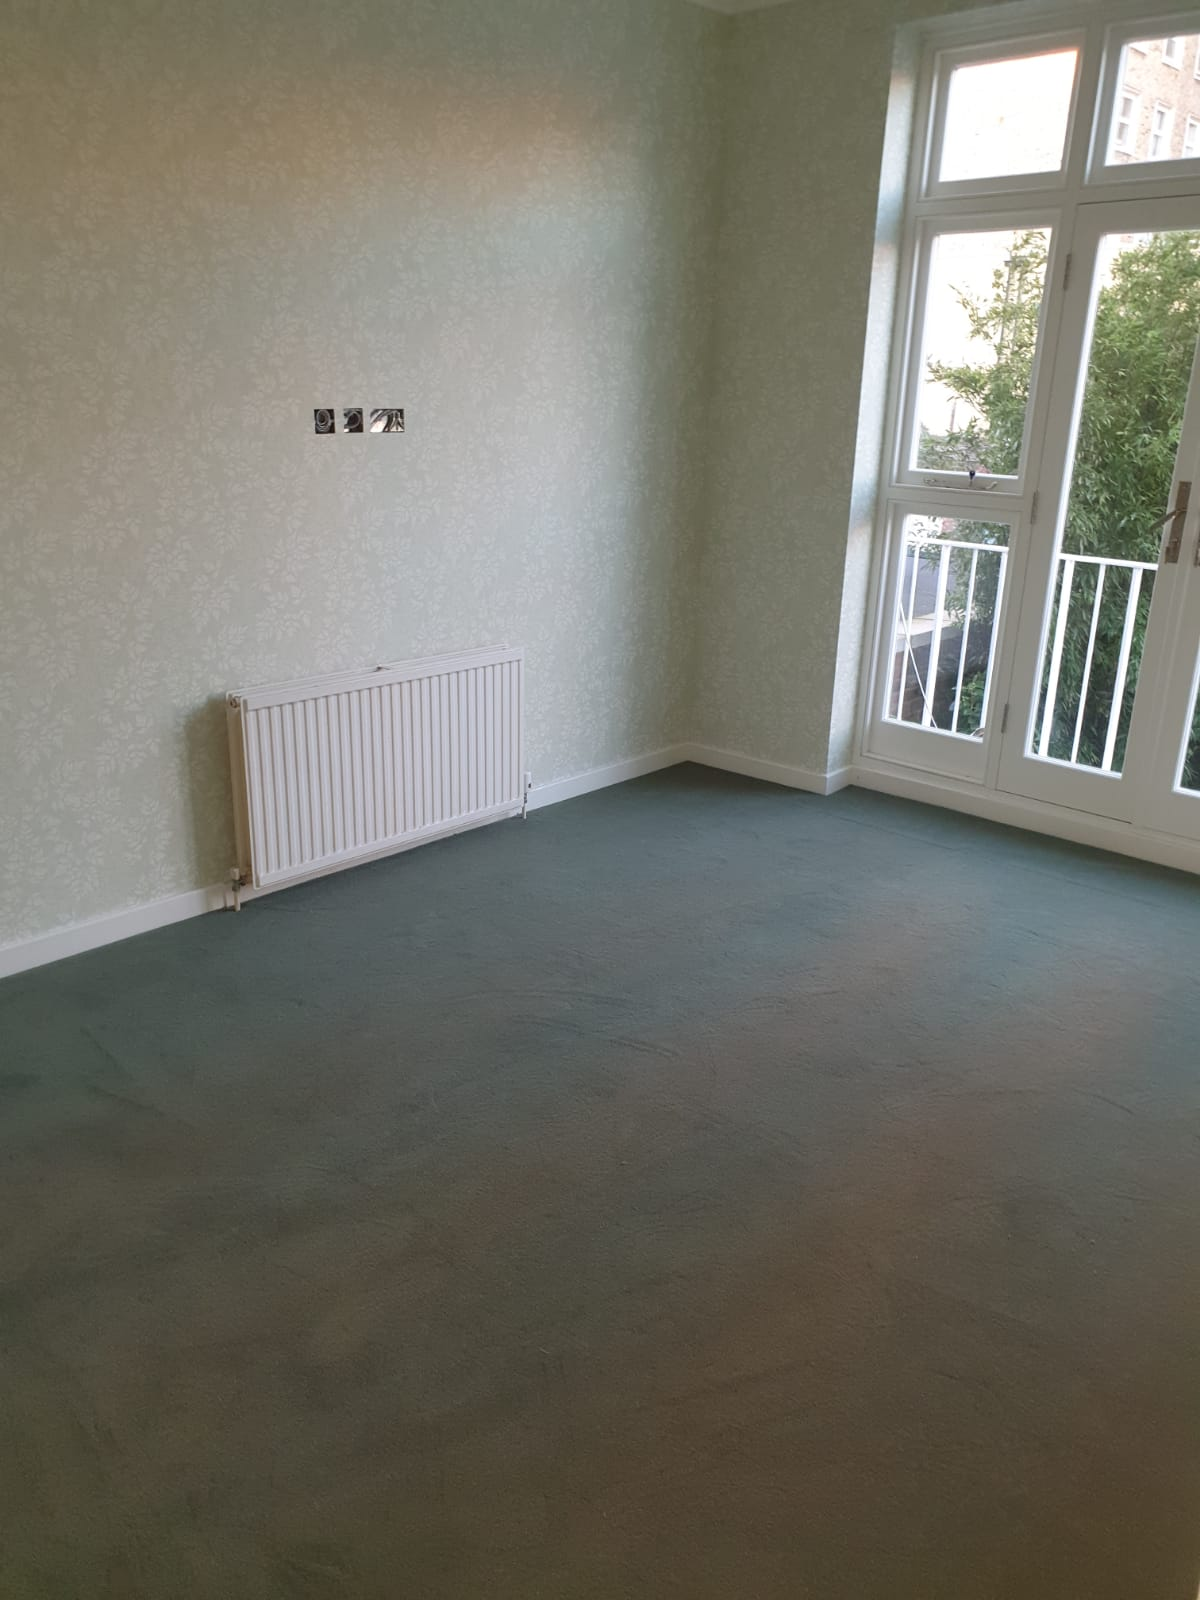 To supply & install grey carpet to room 2